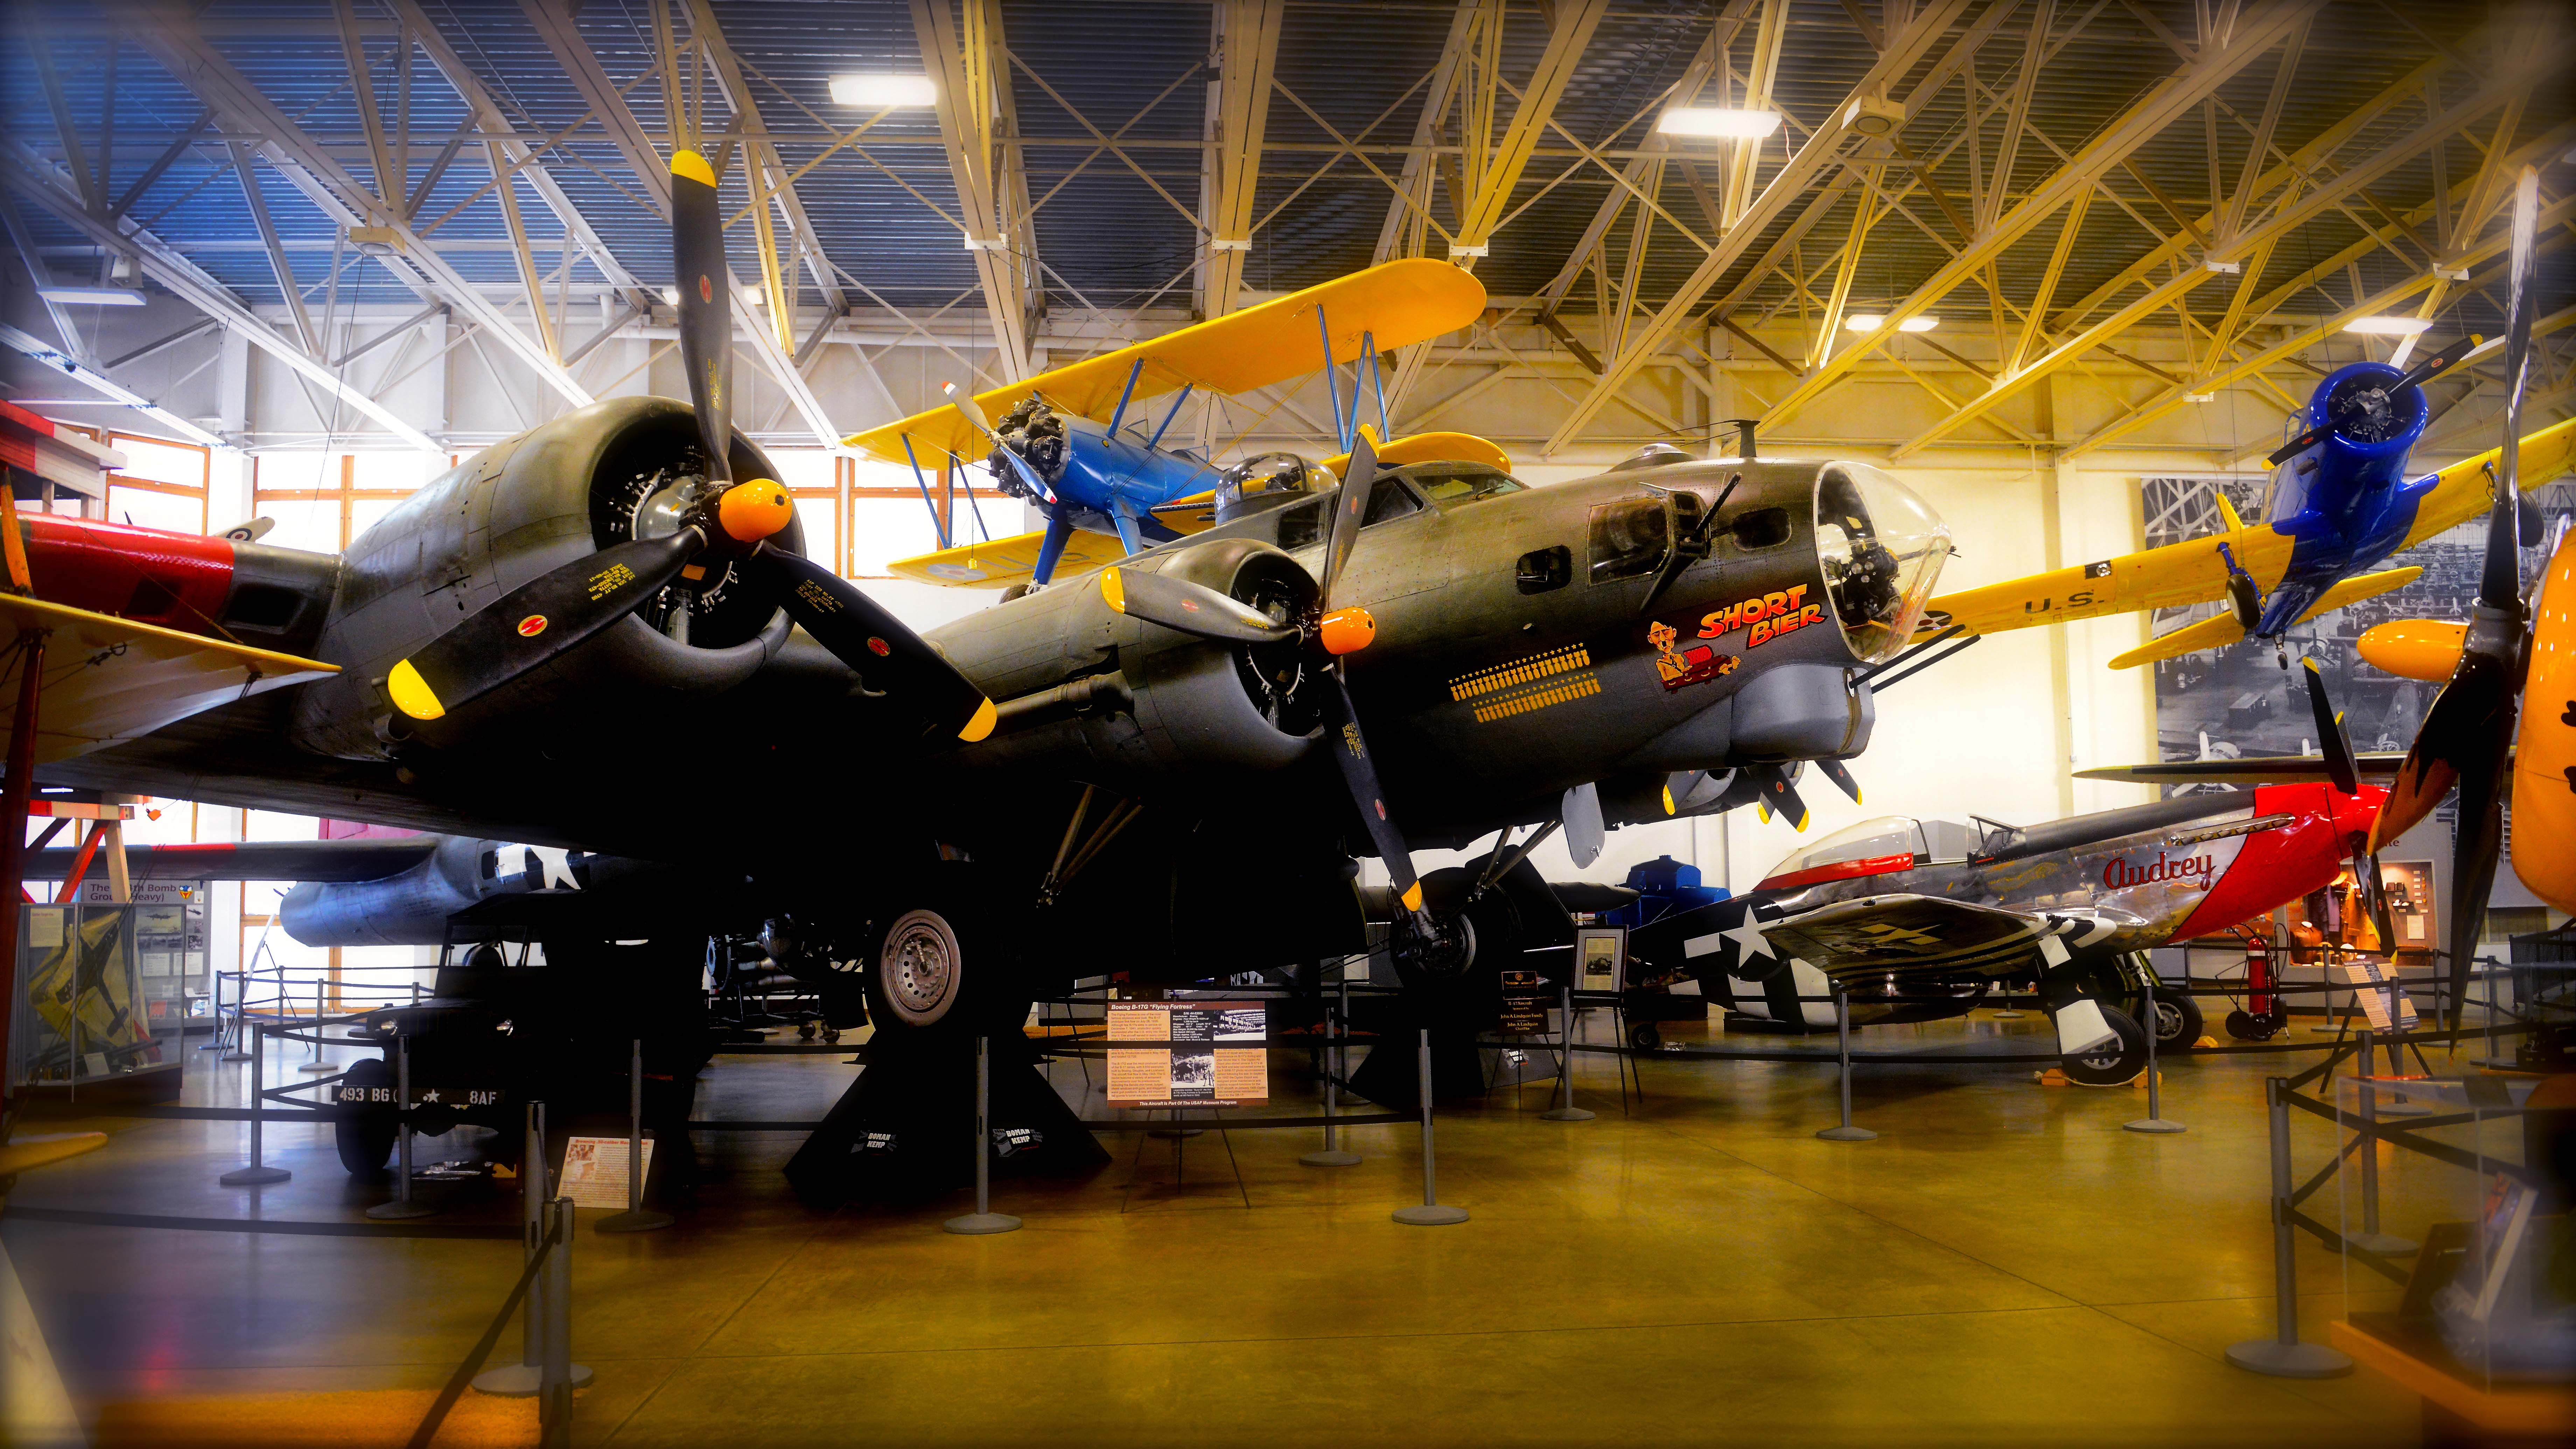 B17 at Hill Aerospace Museum. Just of I15 at exit 338